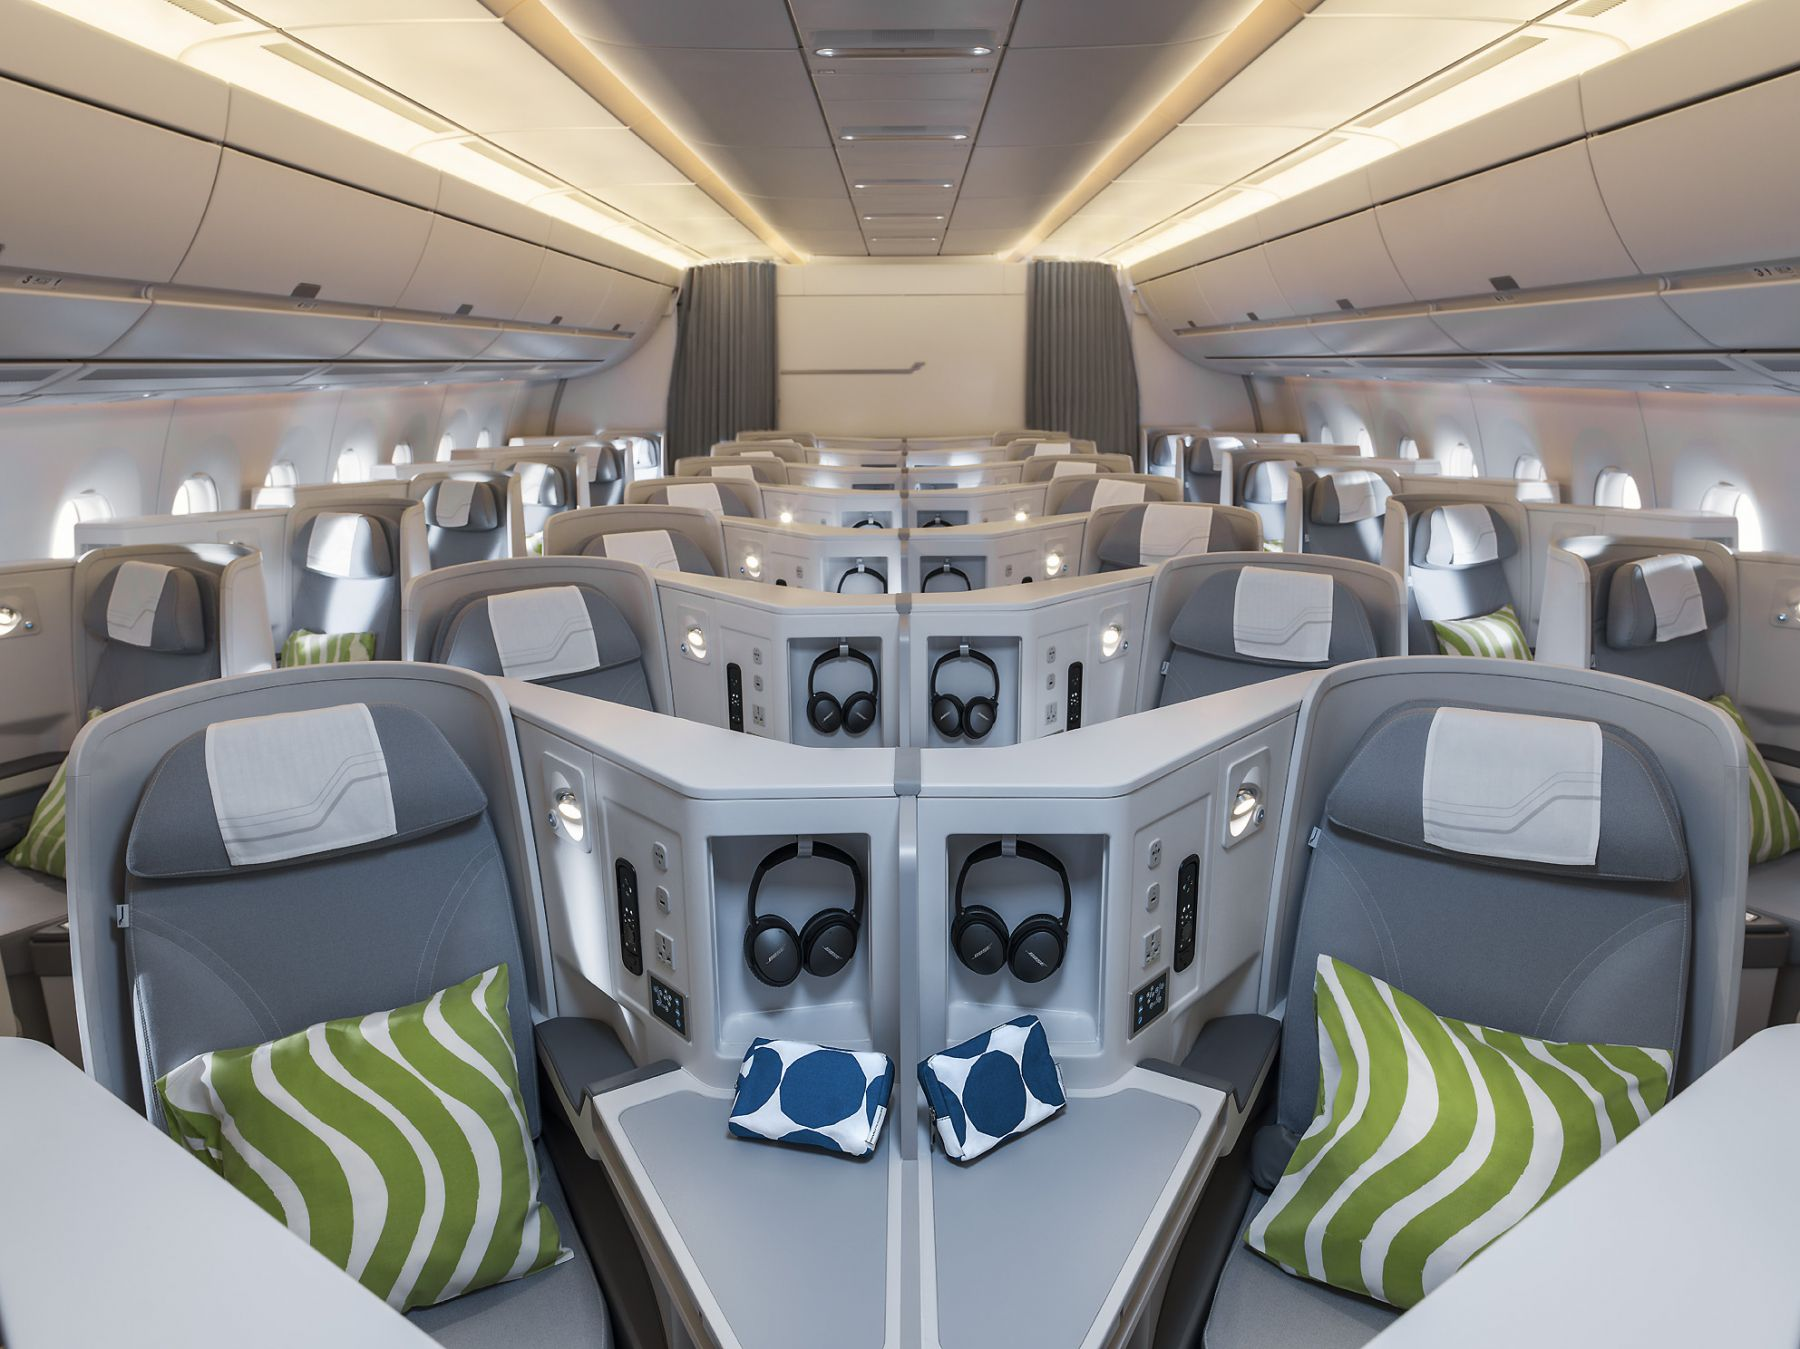 Finnair-A350-business-class-cabin-general-view-warm